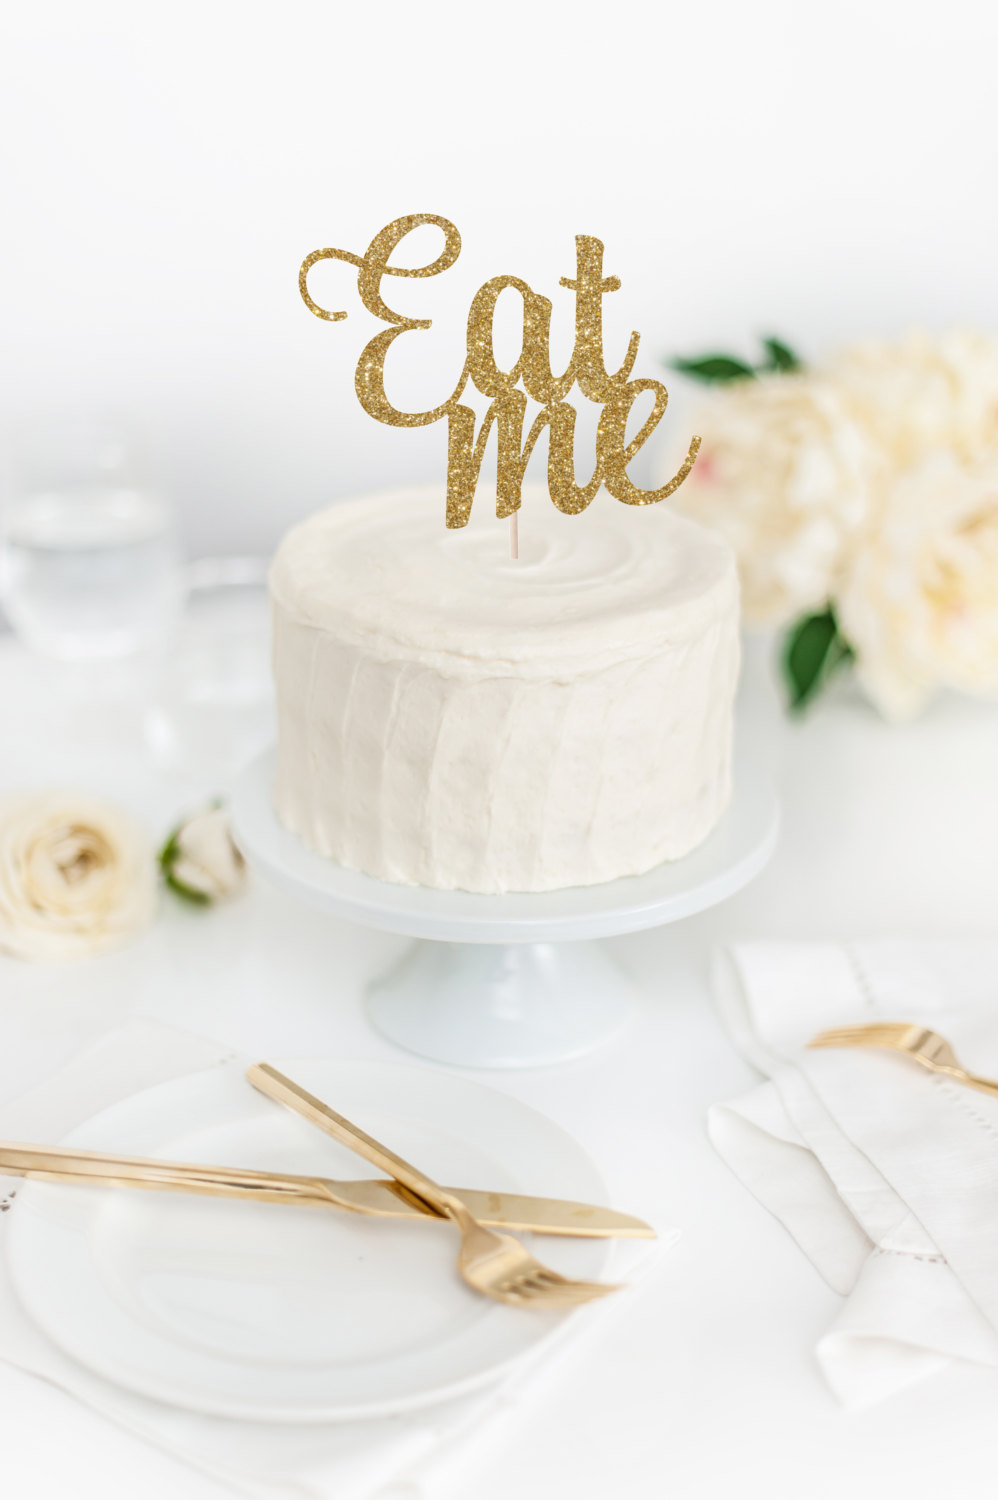 Eat Me Gold Glitter Cake Topper Funny Cake Topper Birthday Party Decoration Glitter Party Props Supplies Alice Cake Topper